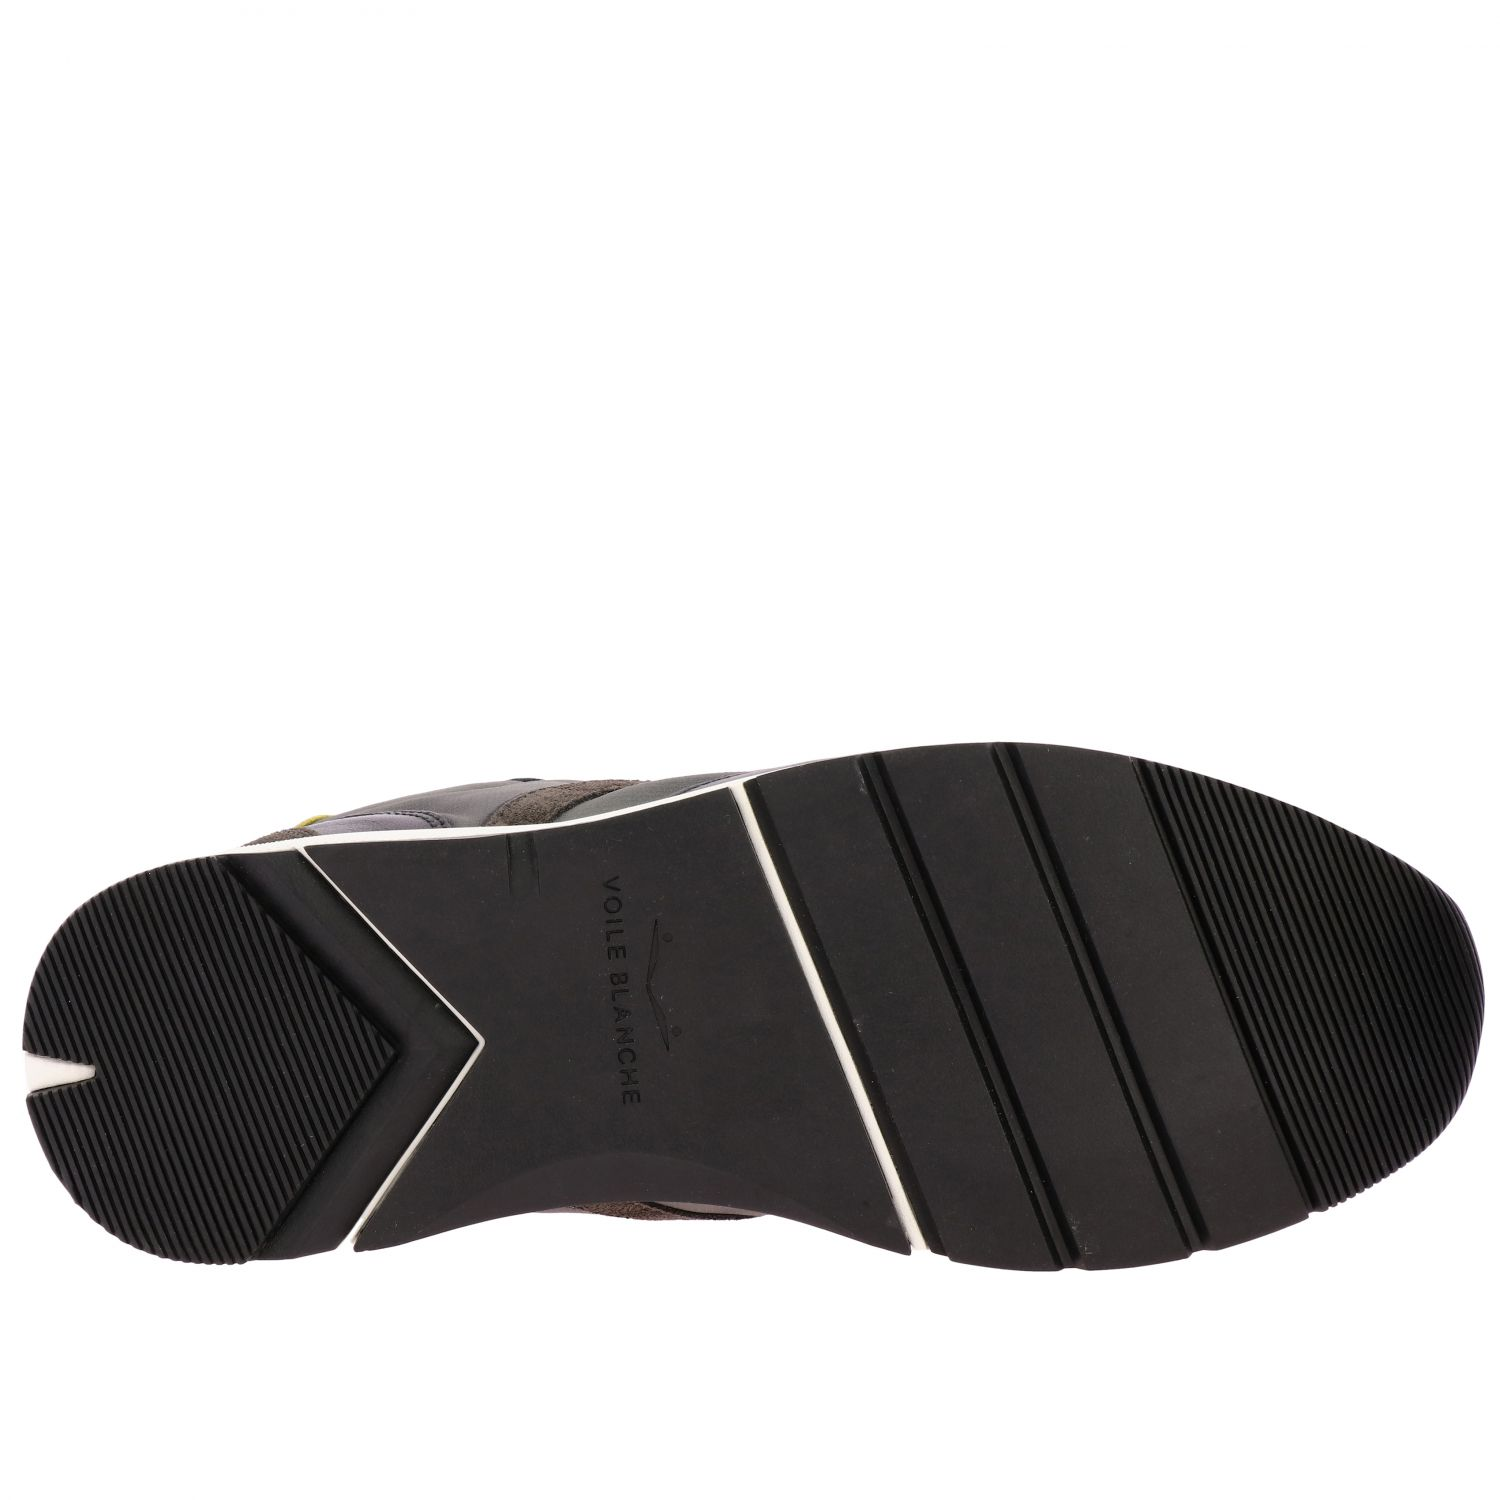 Trainers men Voile Blanche charcoal 6